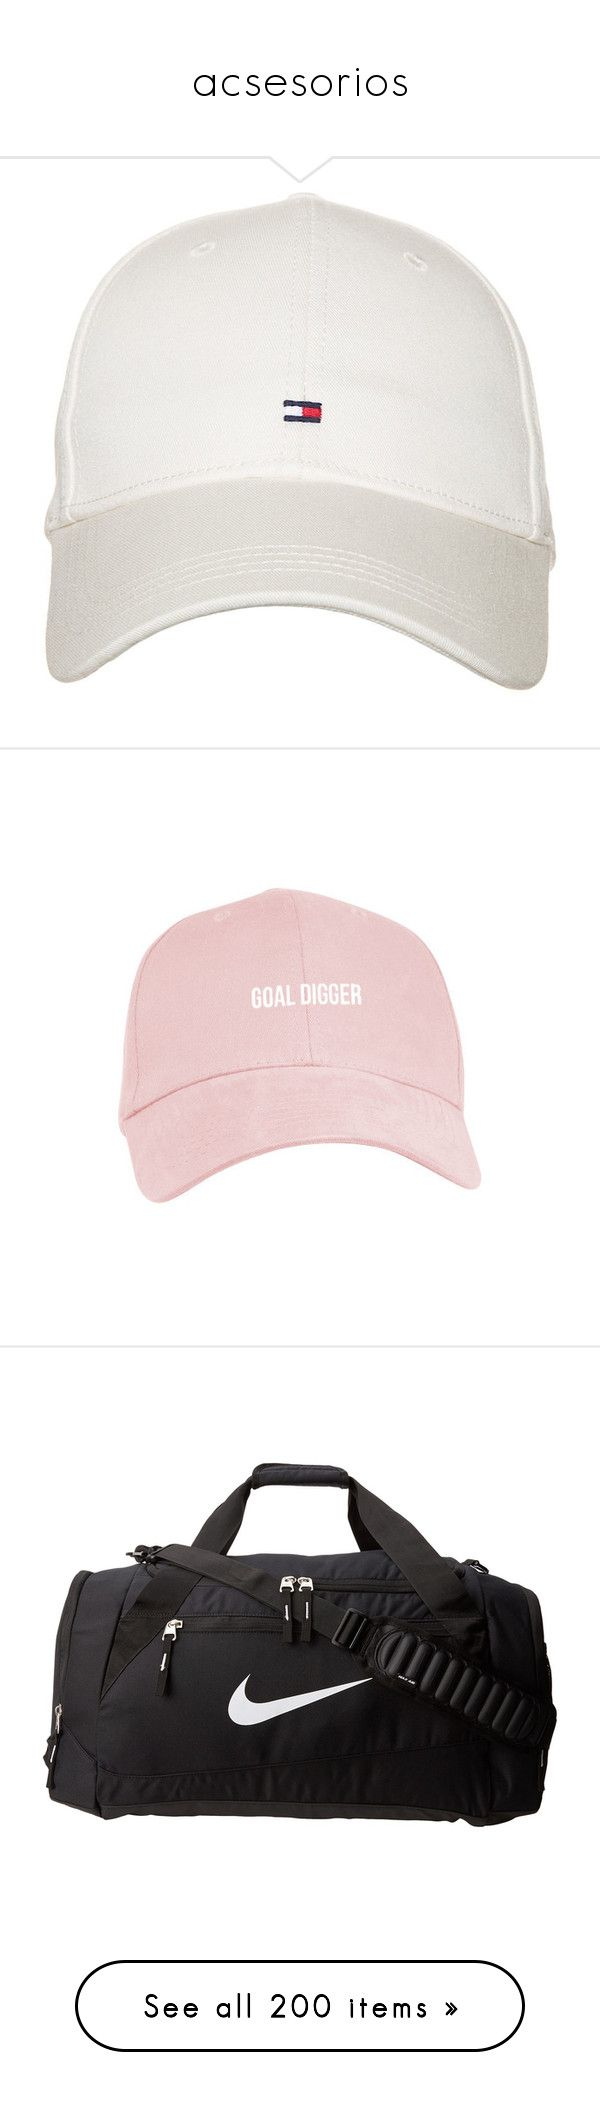 """""""acsesorios"""" by mrtsperes ❤ liked on Polyvore featuring accessories, hats, caps, white, tommy hilfiger cap, tommy hilfiger hat, cap hats, tommy hilfiger, white hat and fillers"""